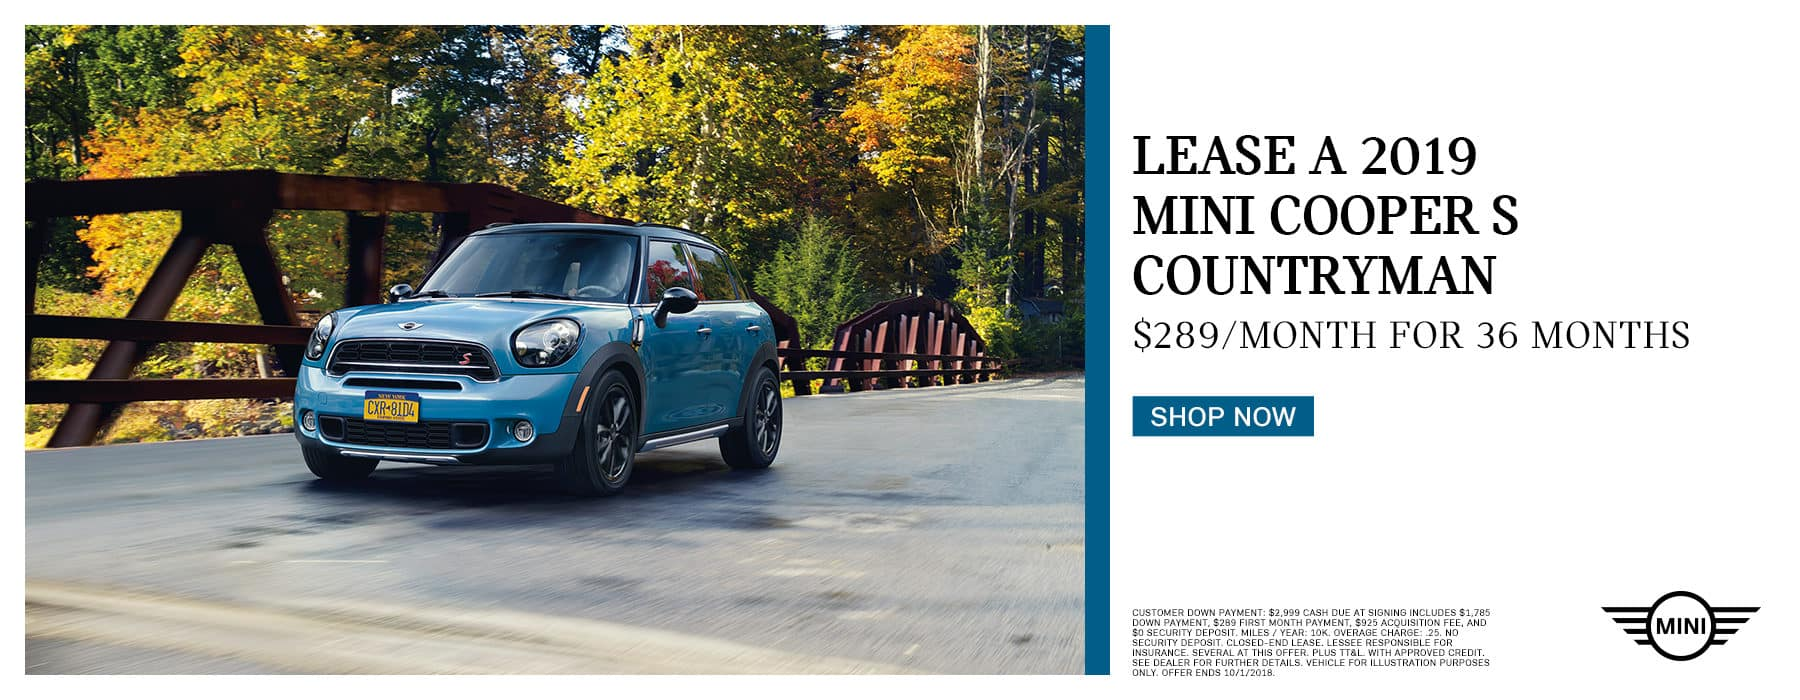 lease-2019-countryman-for-289-per-month